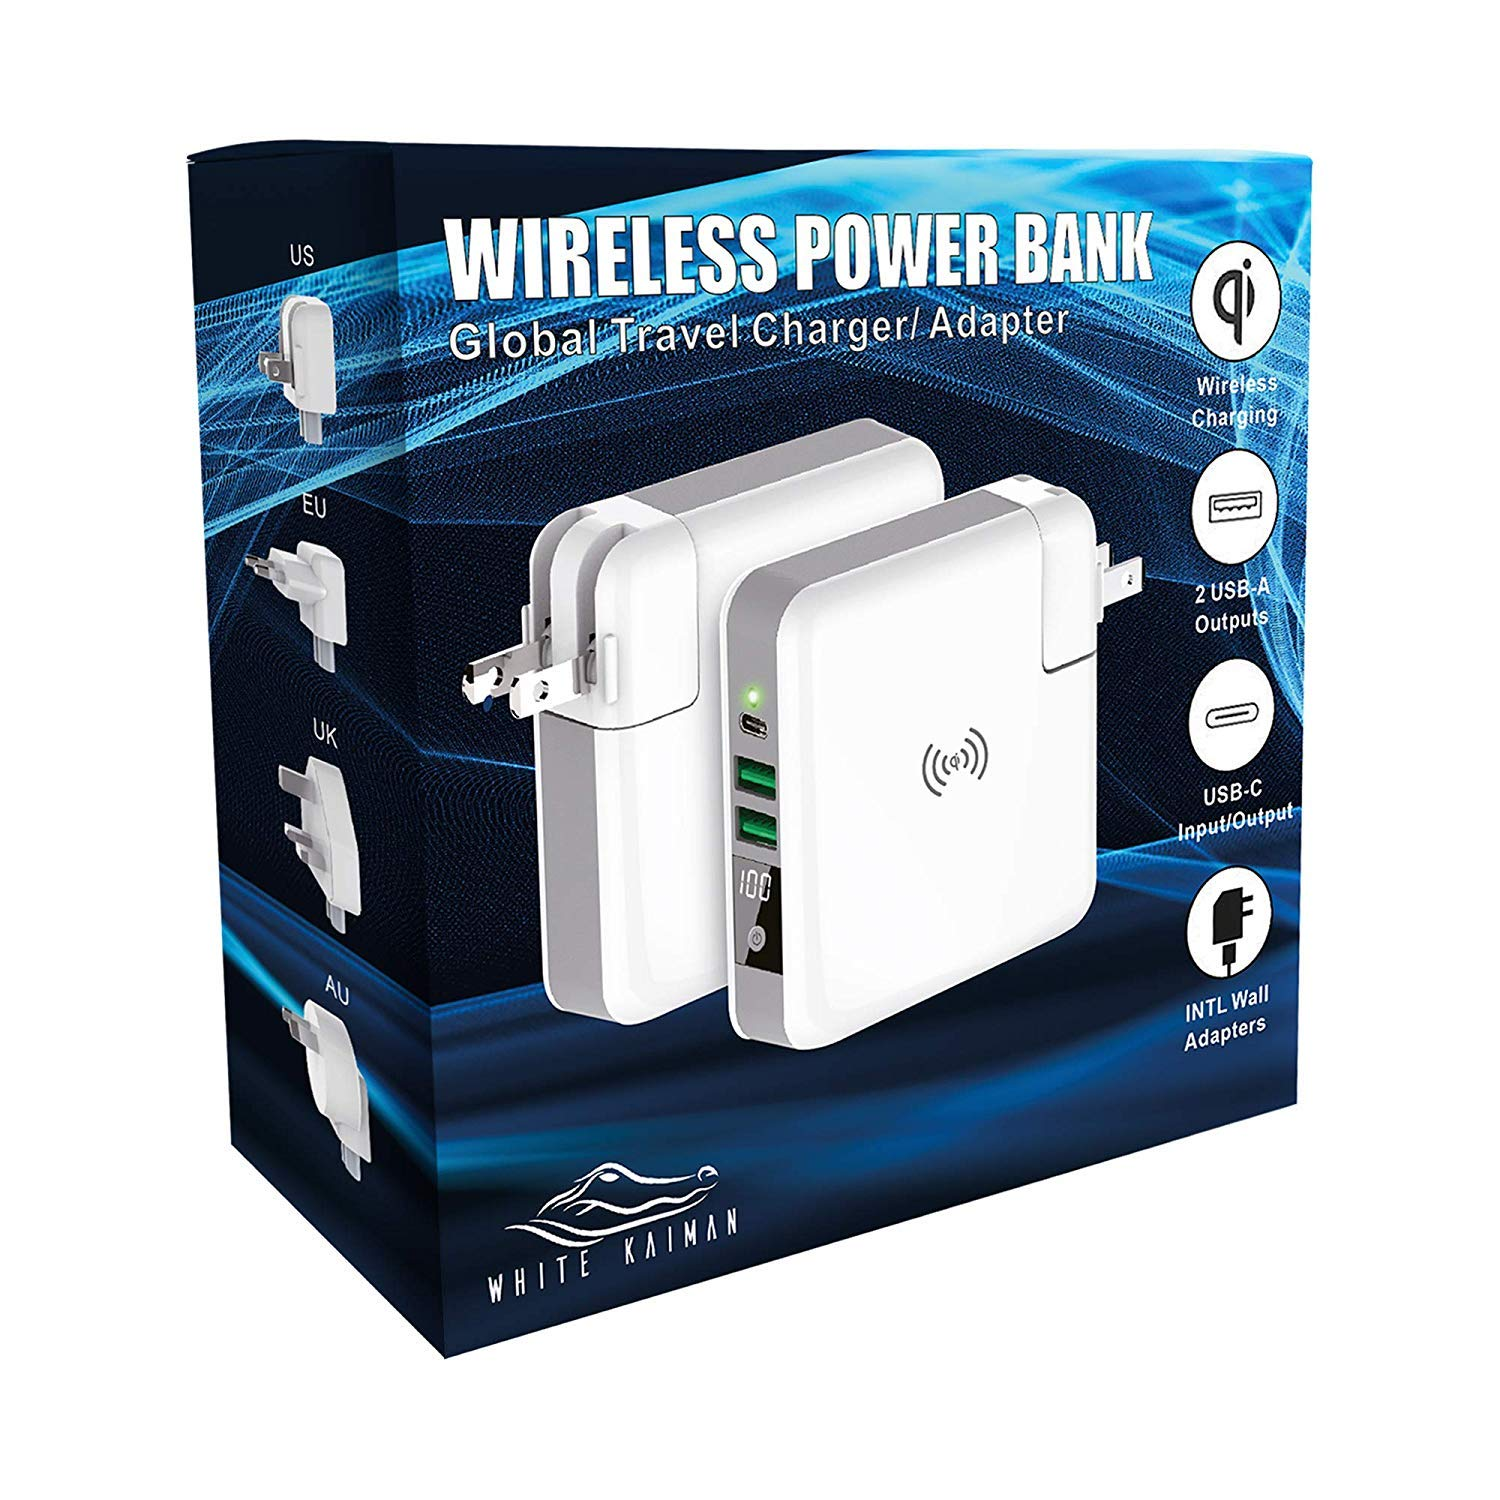 White Kaiman Global Travel Wireless Power Bank -External Wall Charger w/Qi Wireless Super Charging Pad Compatible for iPhone, Samsung Galaxy & iPads (Power Bank w/International Adapters)